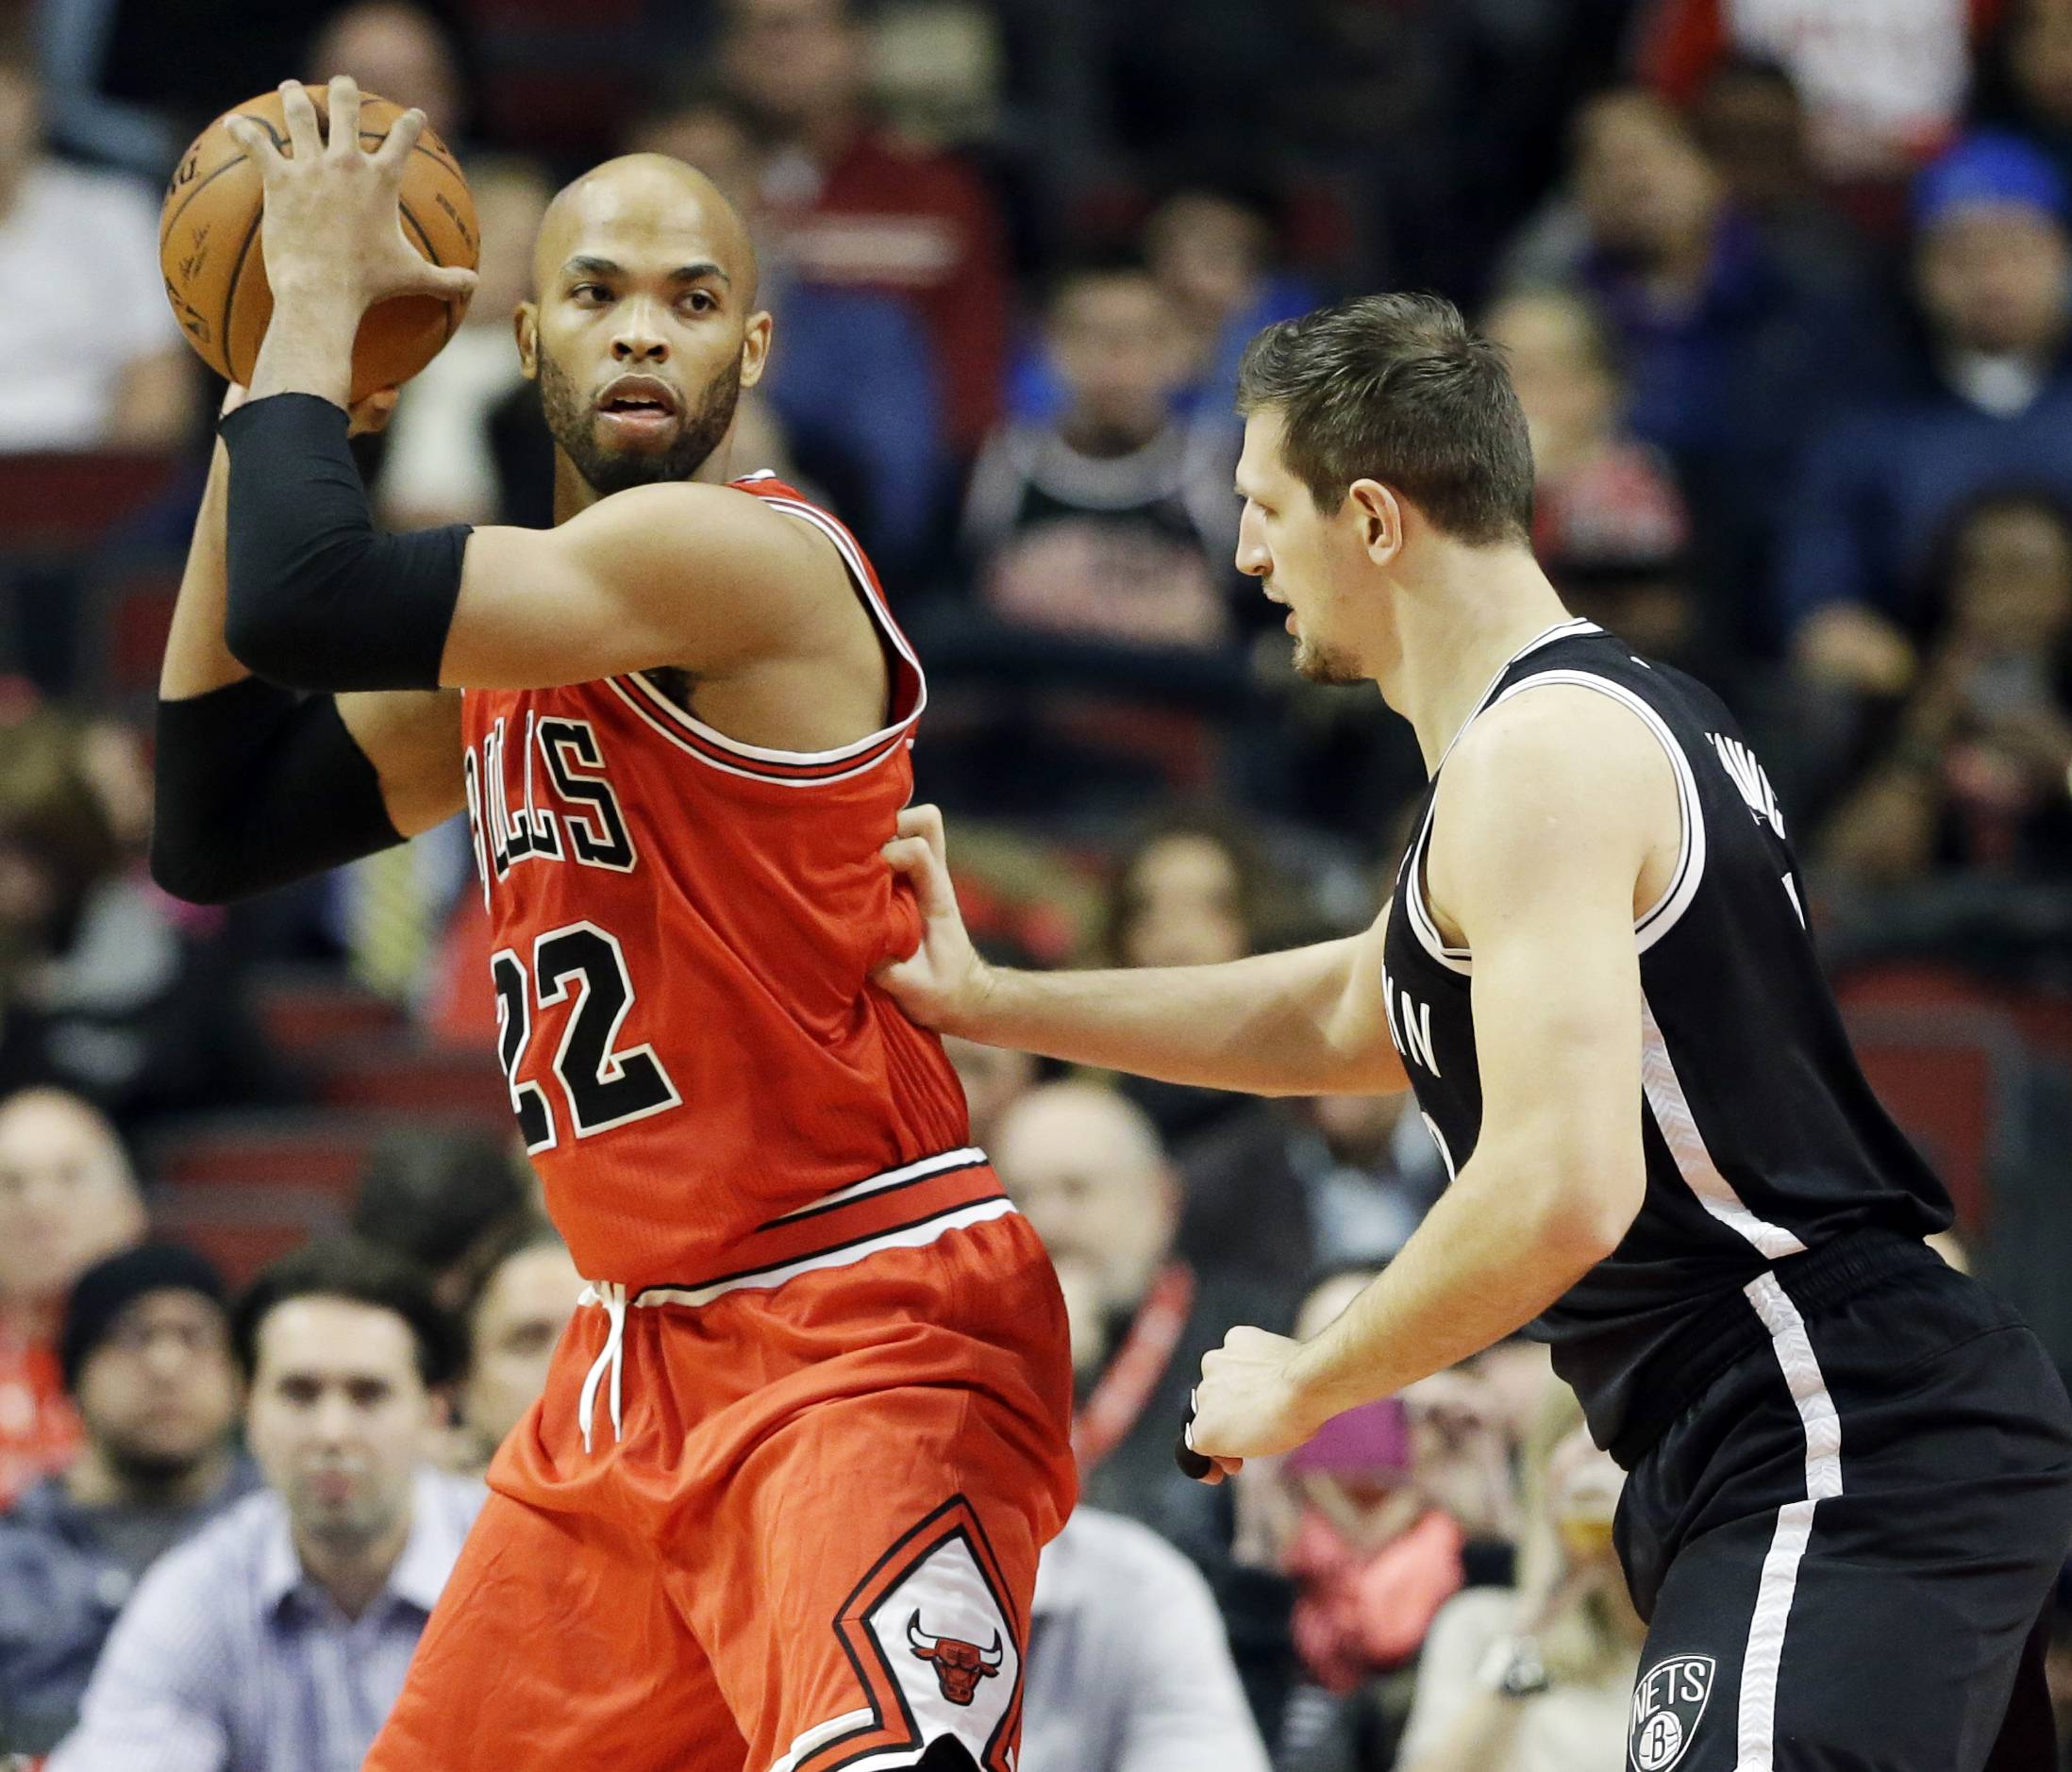 Bulls forward Taj Gibson said the addition of power forward Pau Gasol will give the team more depth.